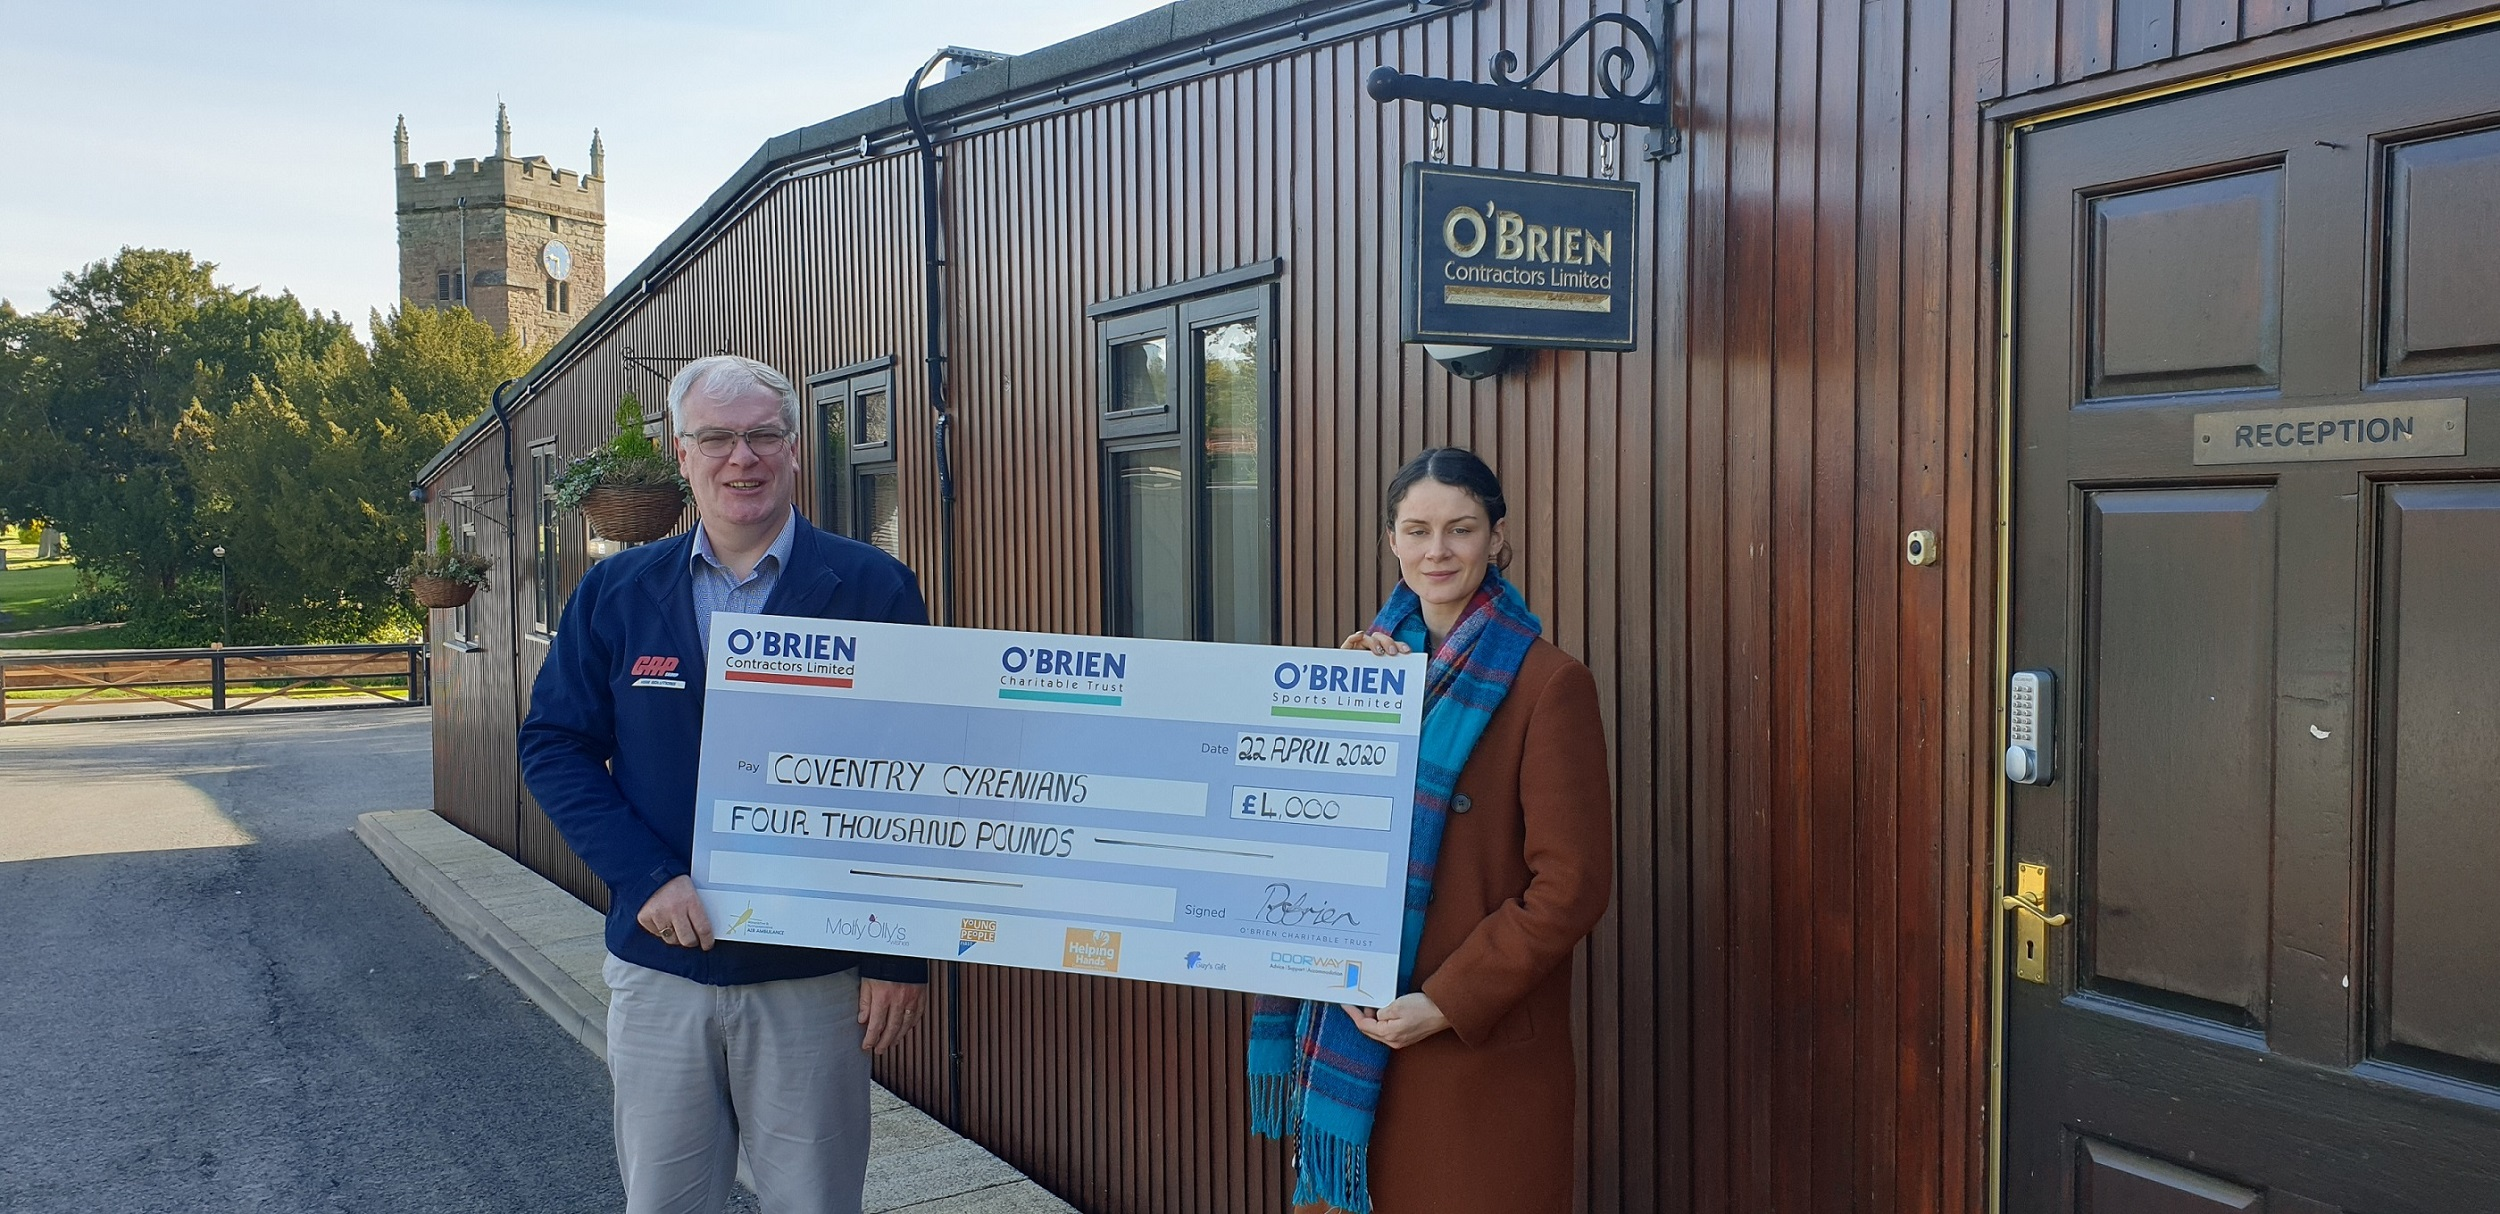 O'Brien Charitable Trust Donate £4,000 to Coventry Cyrenians Society